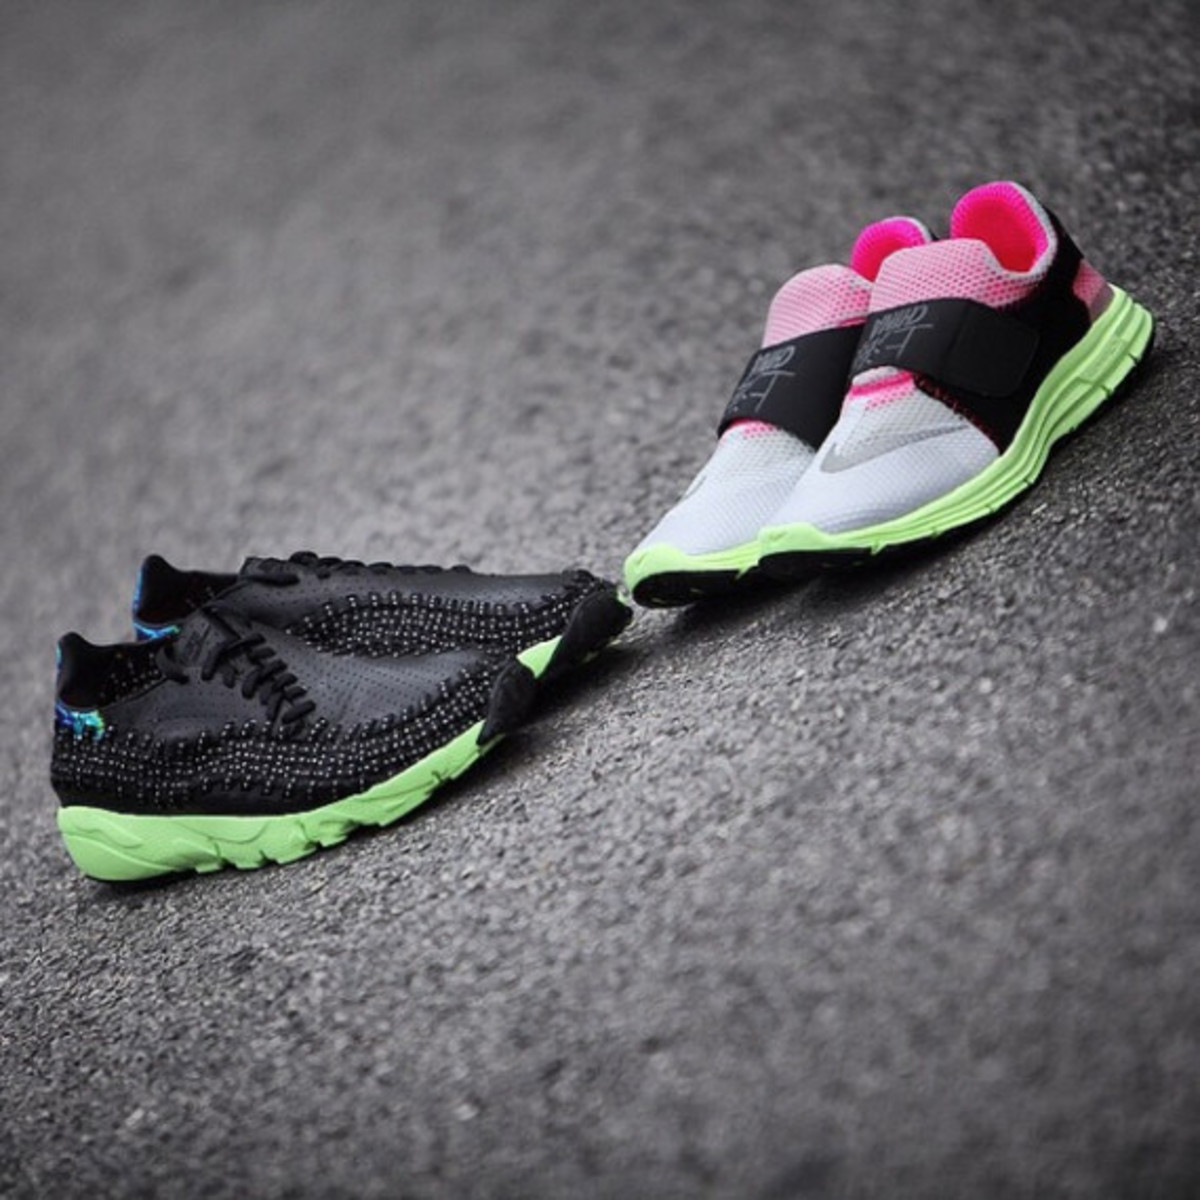 """Nike Sportswear """"City Pack: Shanghai"""" Collection - 9"""